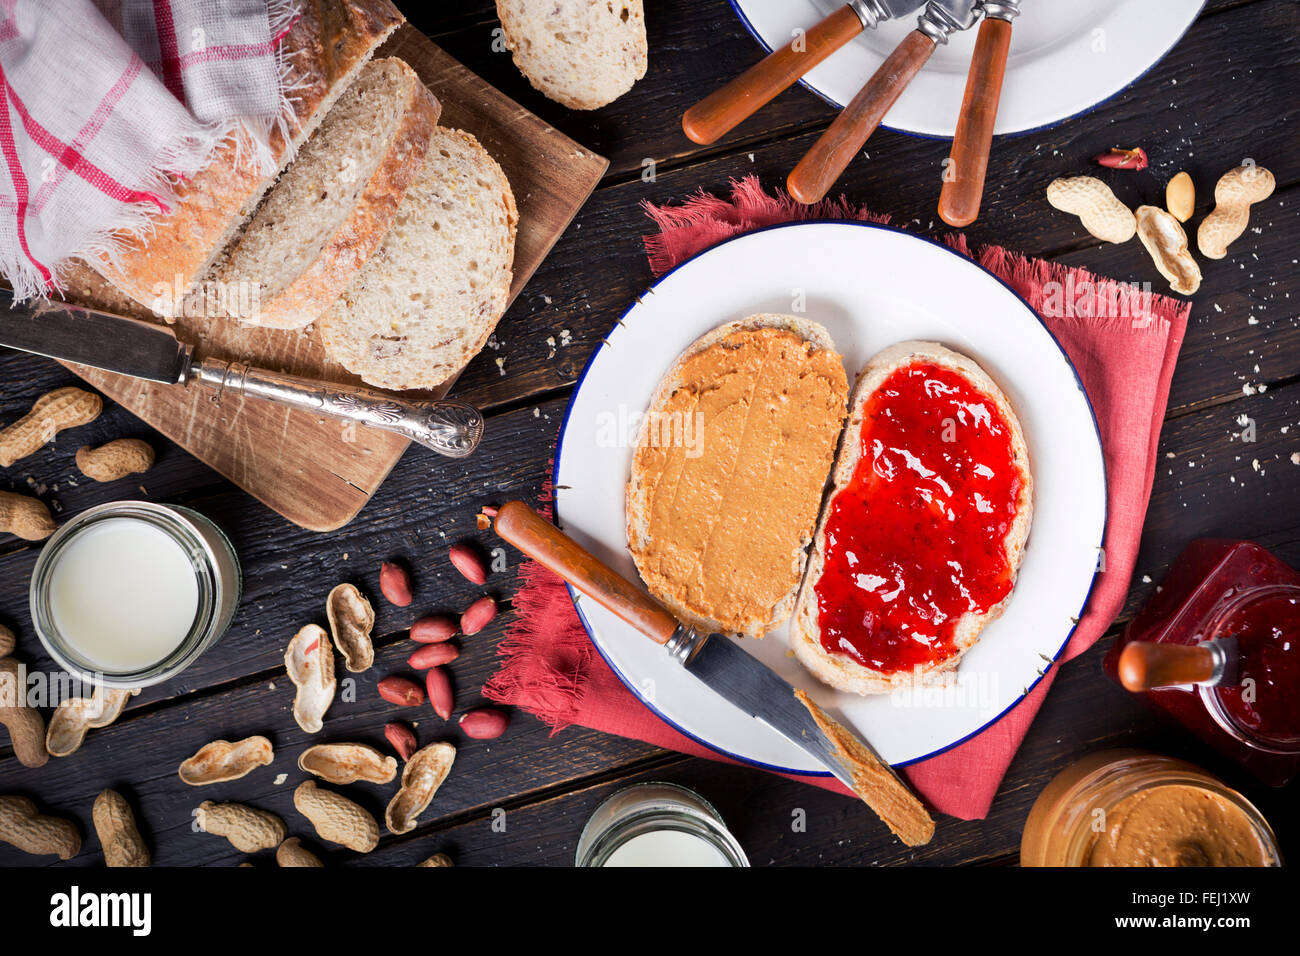 Peanut butter and jelly sandwich on a rustic table. Photographed from directly above. - Stock Image